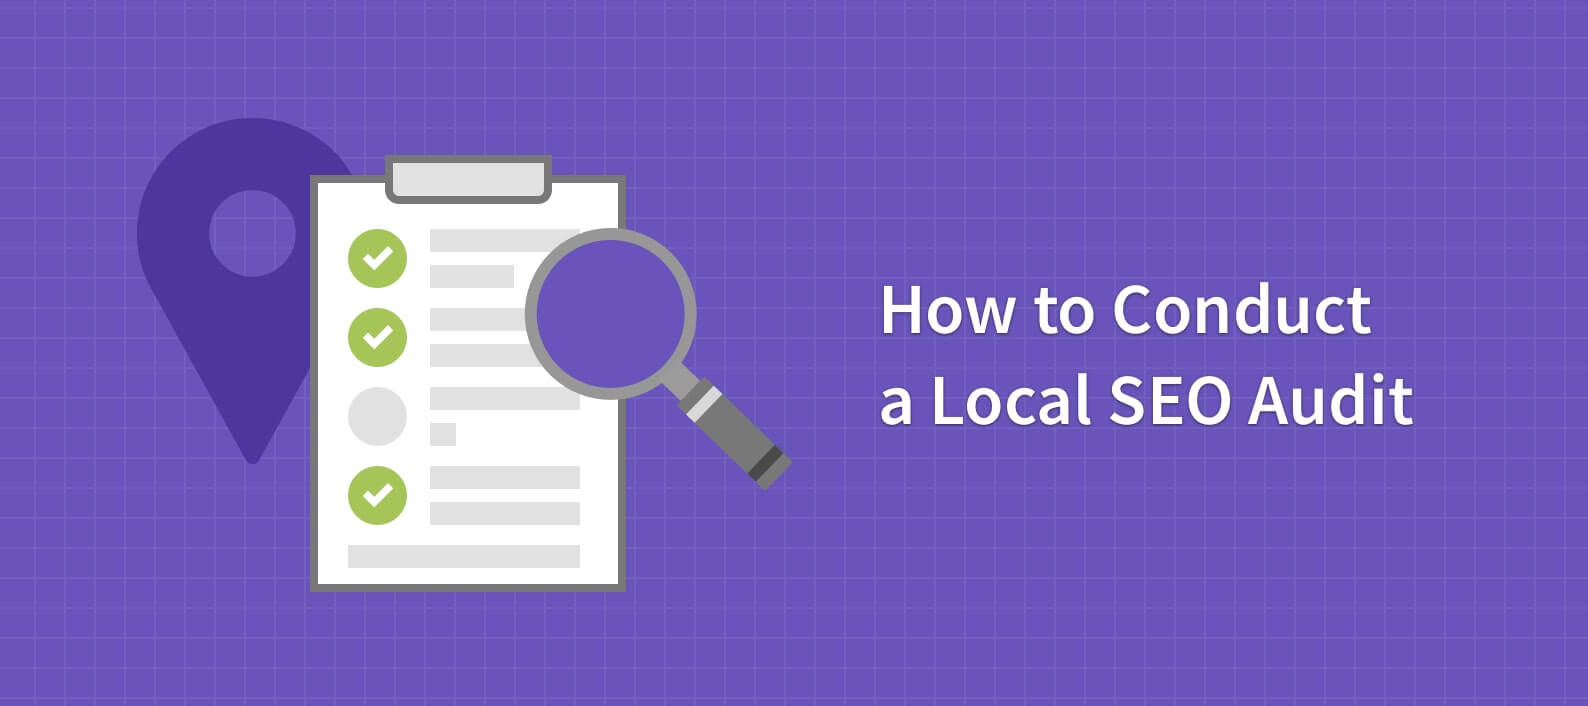 5 Areas to Audit on Local Sites to Create Stronger SEO Foundation